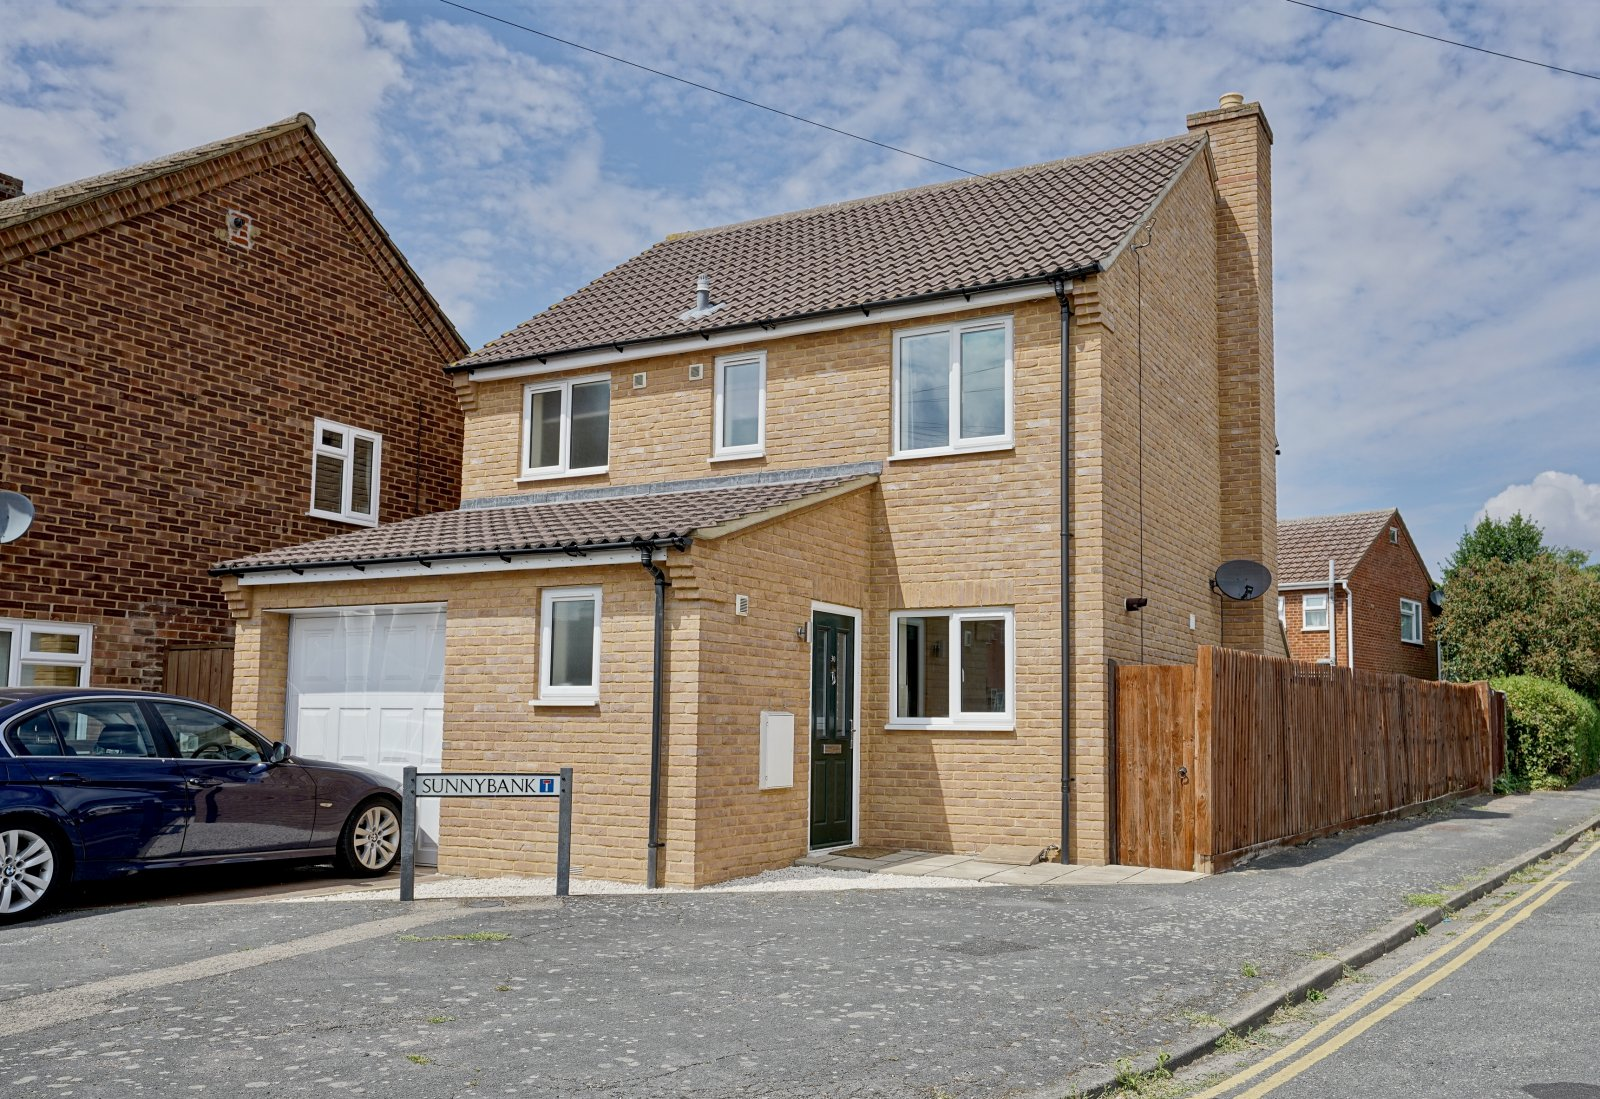 3 bed house for sale in Green End Road, St. Neots, PE19